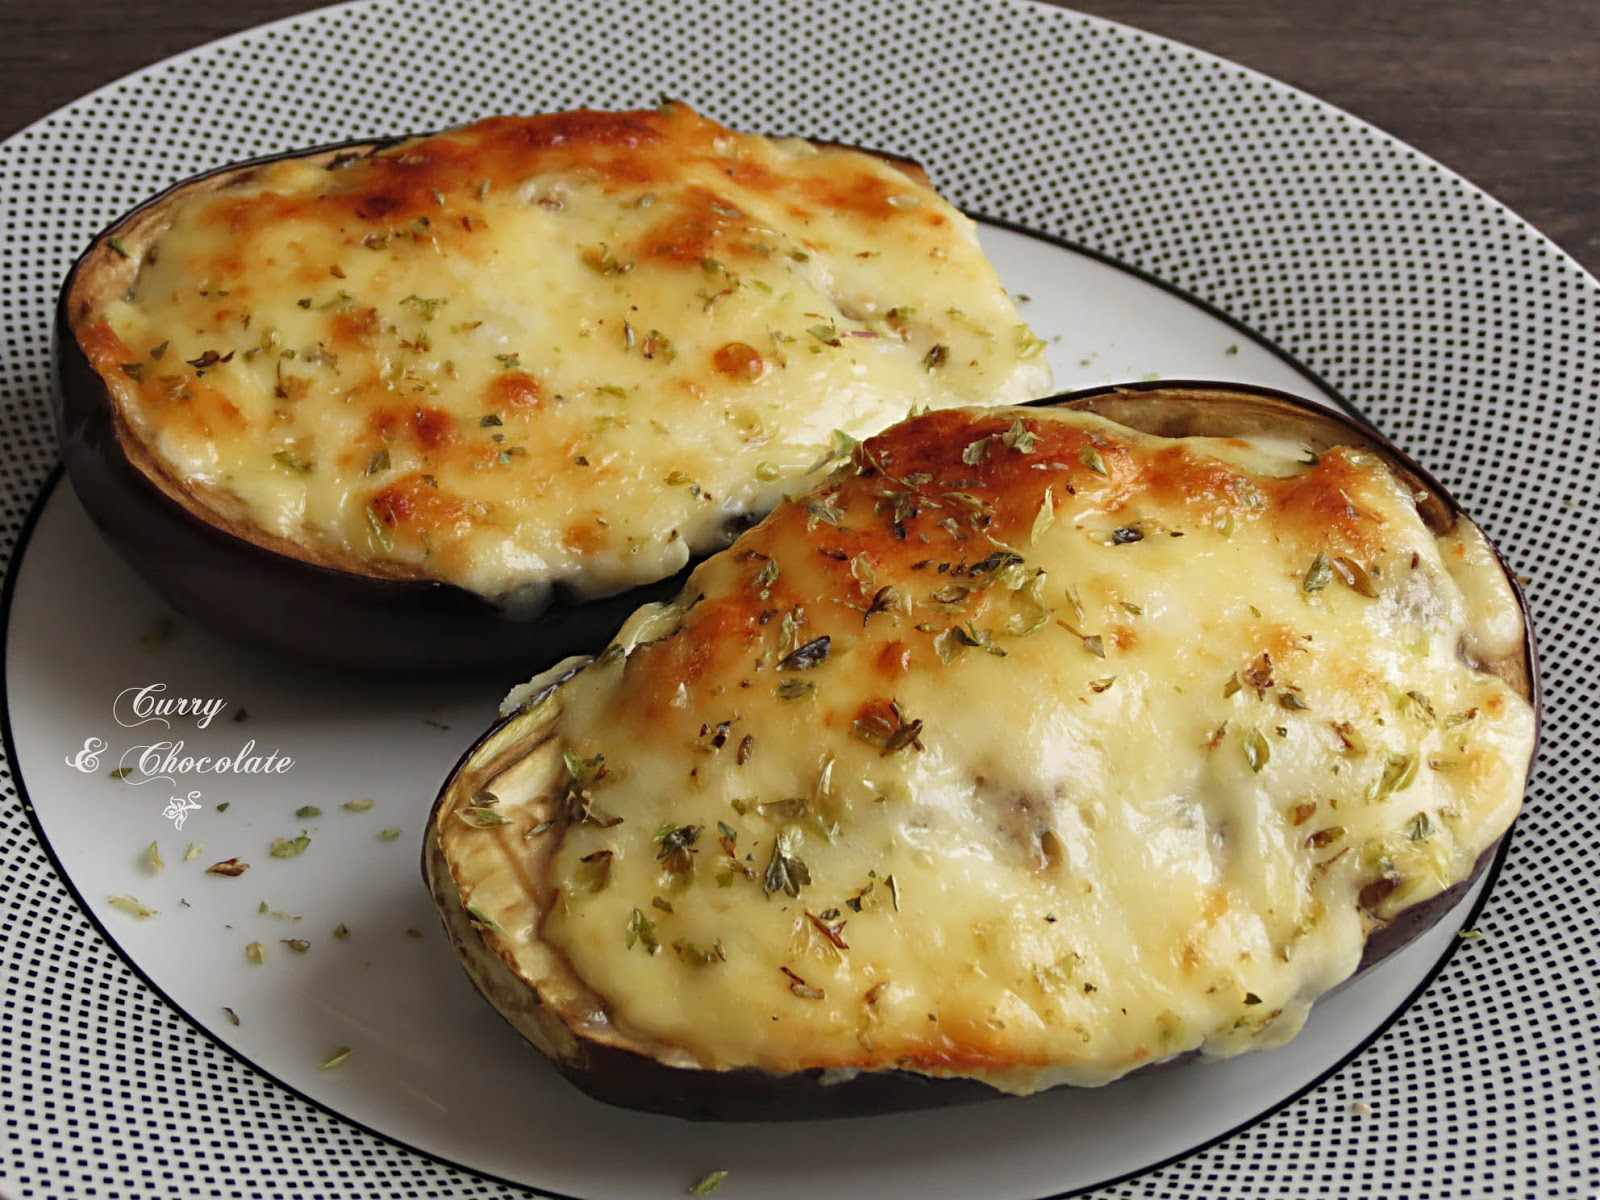 Berenjenas rellenas de champiñones y queso – Mushroom and cheese stuffed eggplants